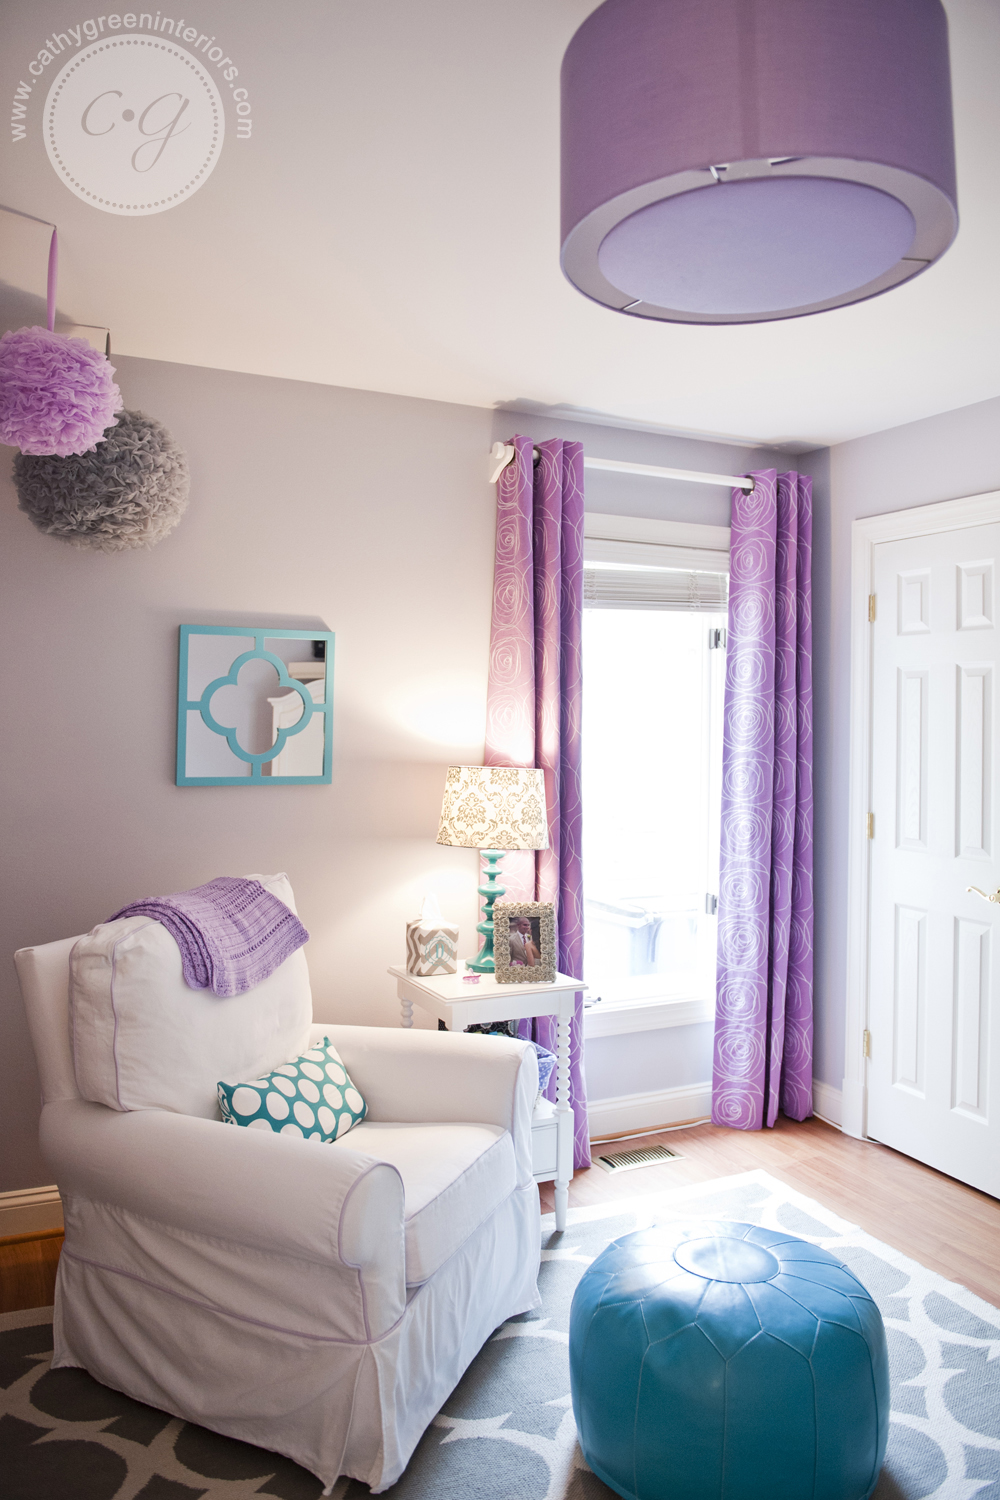 purple & gray nursery chair & window.jpg